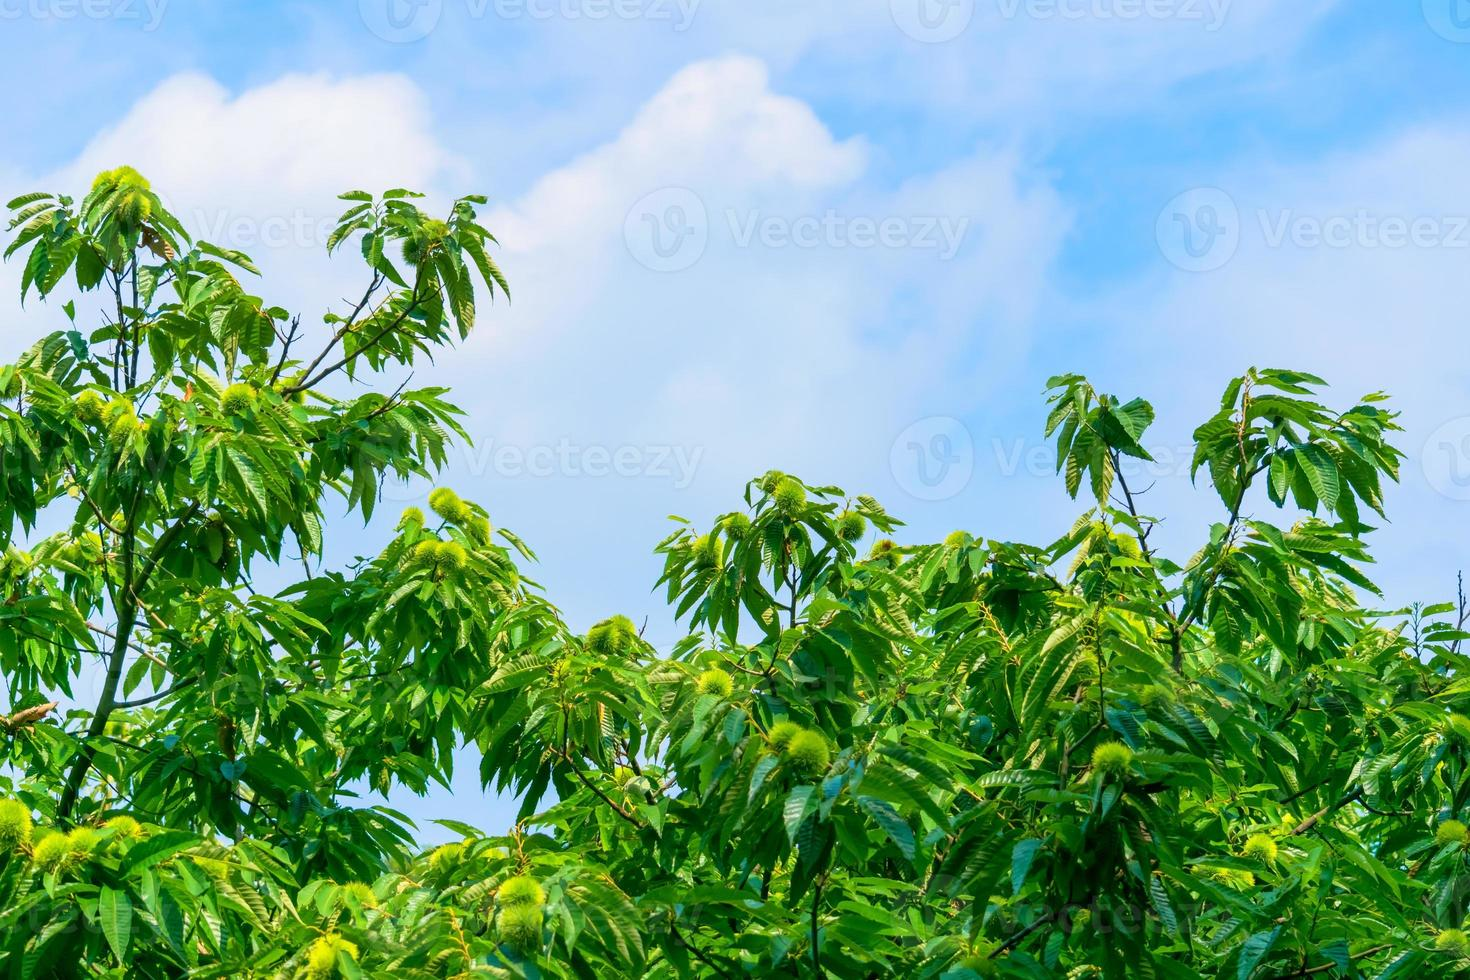 Chestnut tree and green chestnuts photo